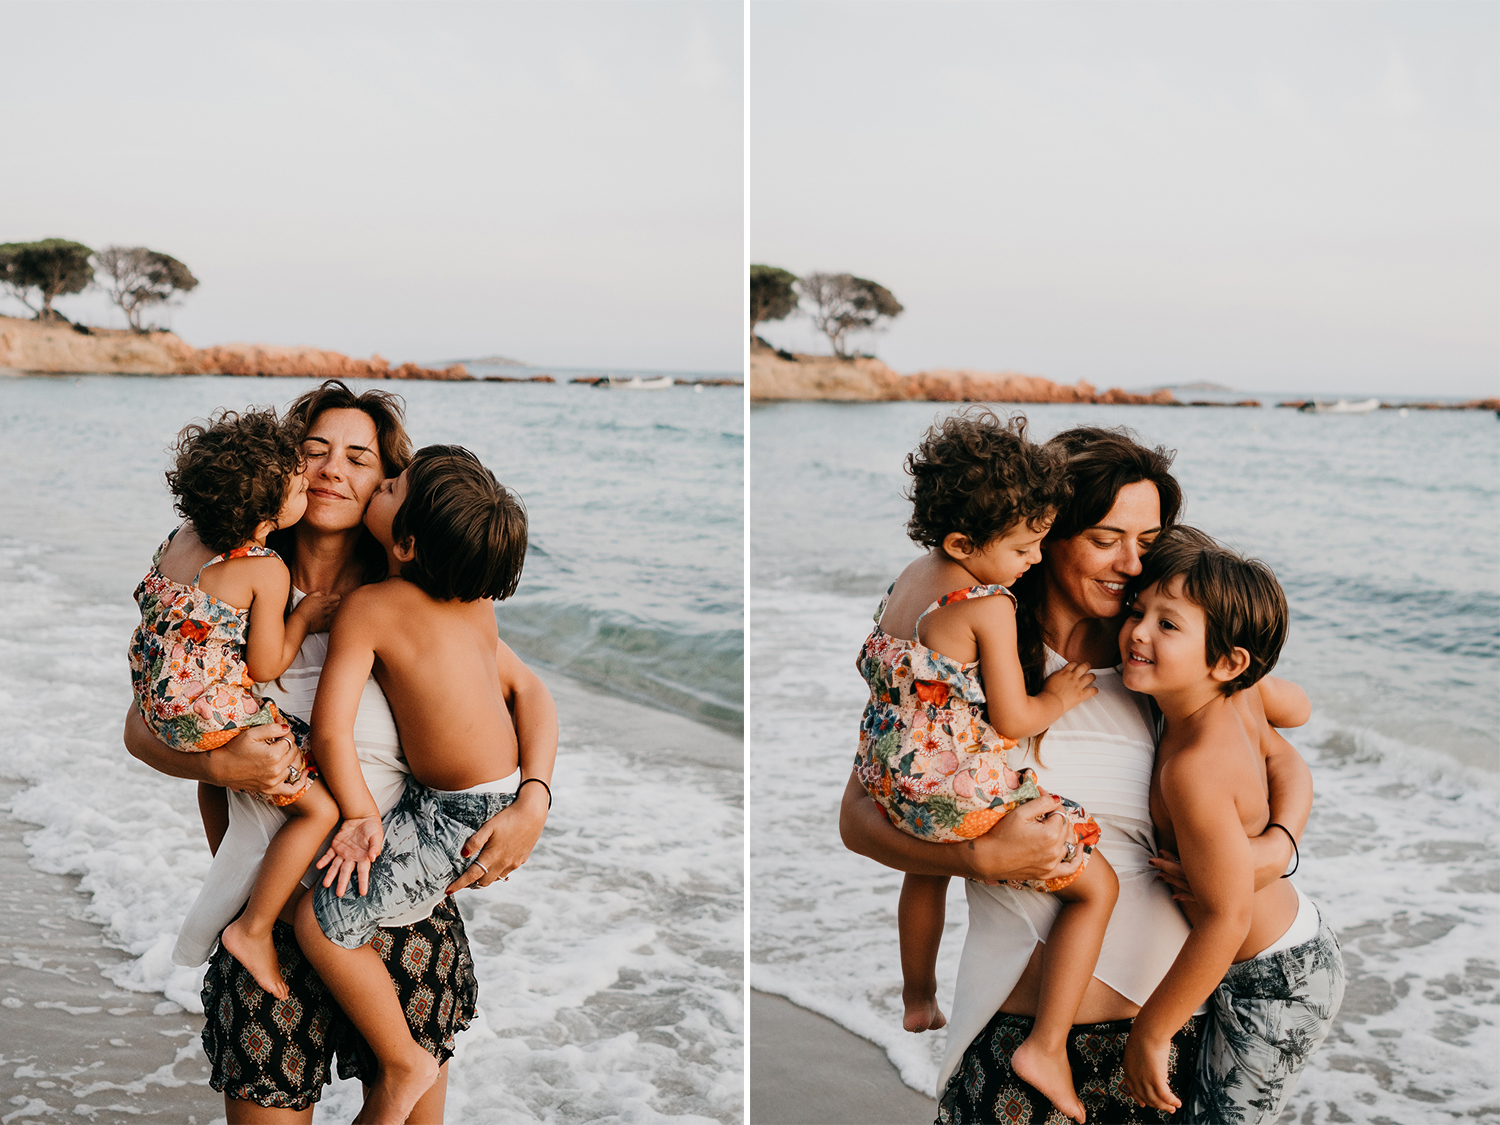 mom hugging  both kids on the beach during family lifestyle photo session in palombaggia beach, santa giulia. Corsica. by rebecca rinaldi photography